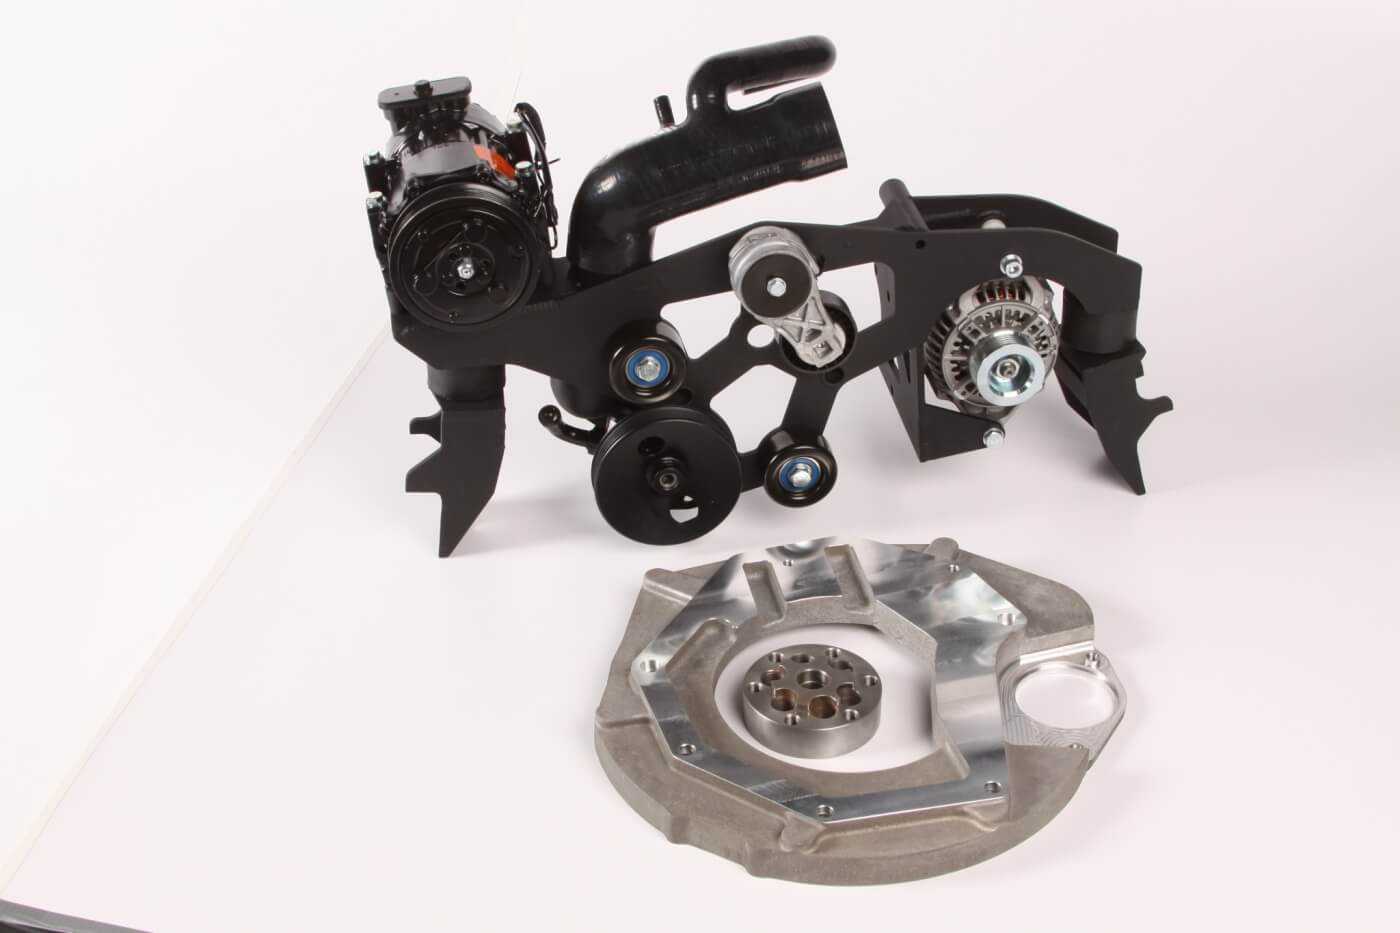 Jeep Clean TDI Diesel Conversion System to Fit YJ, TJ and XJ (1.9 PD TDI)